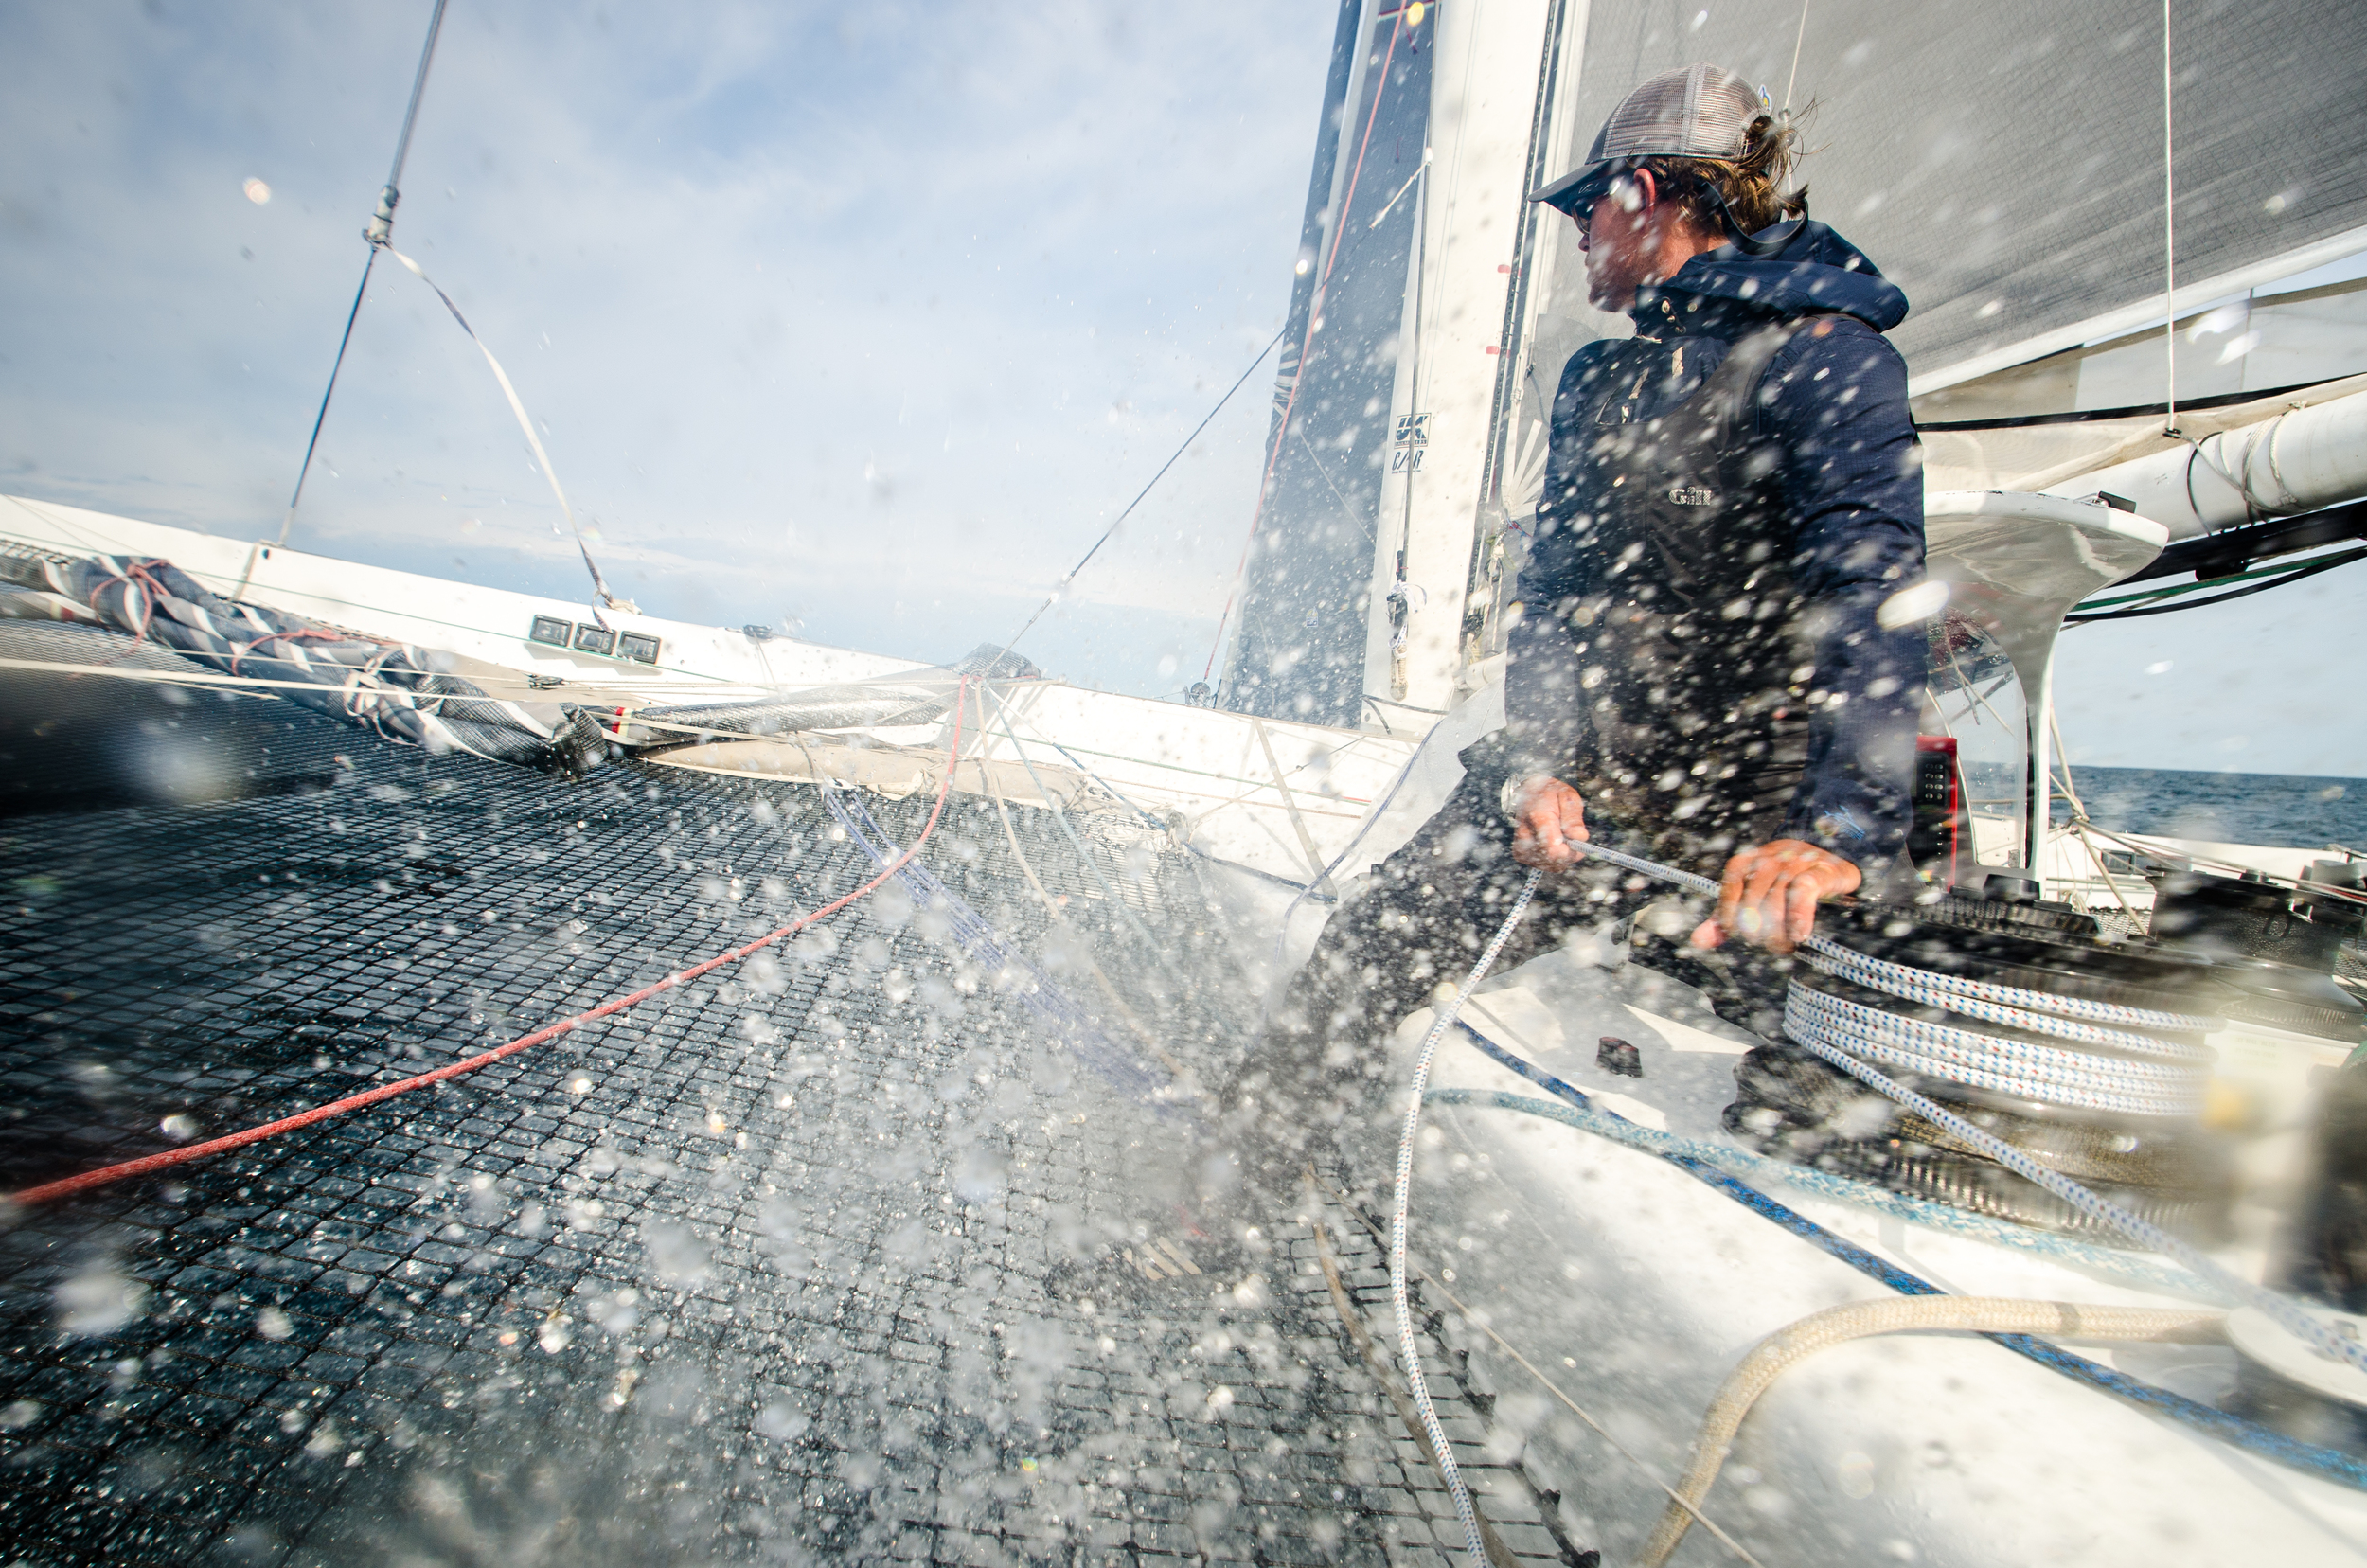 Donny takes a face full of spray as a wave hits the bow and pushes water up through the netting.